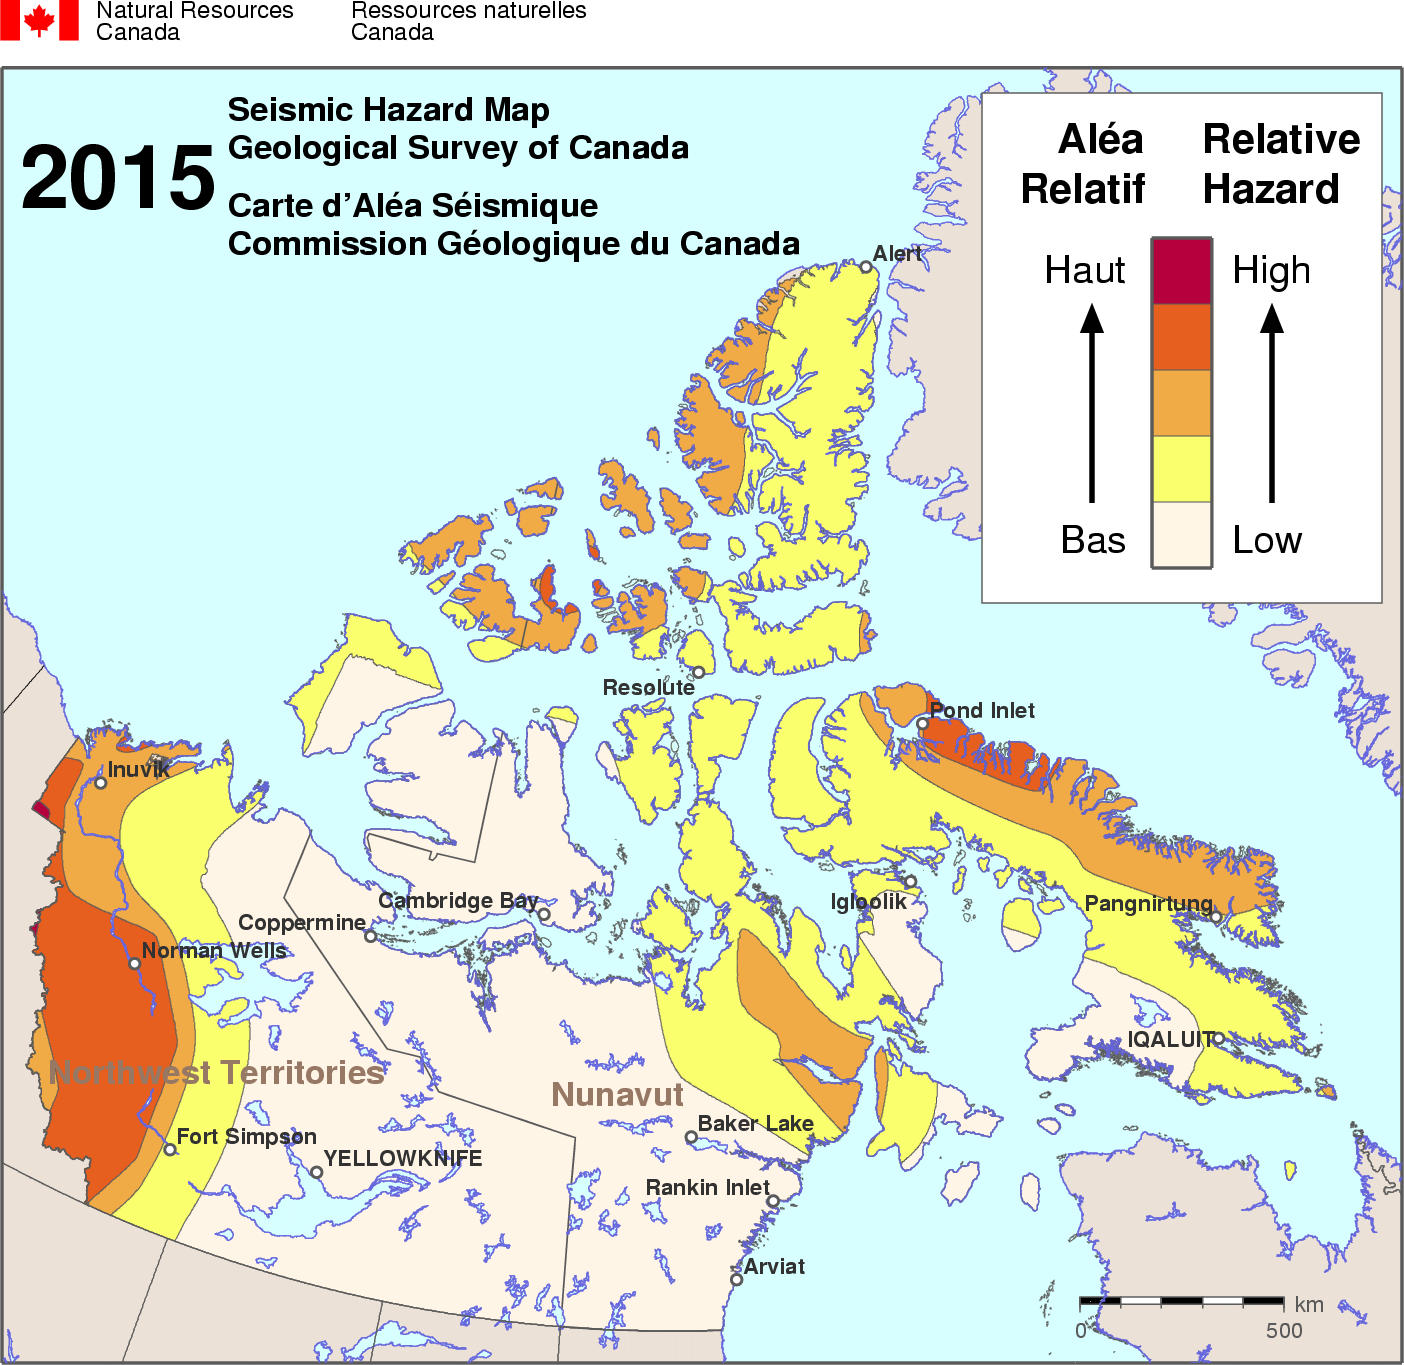 Northwest Territories Canada Map.Simplified Seismic Hazard Map For Canada The Provinces And Territories